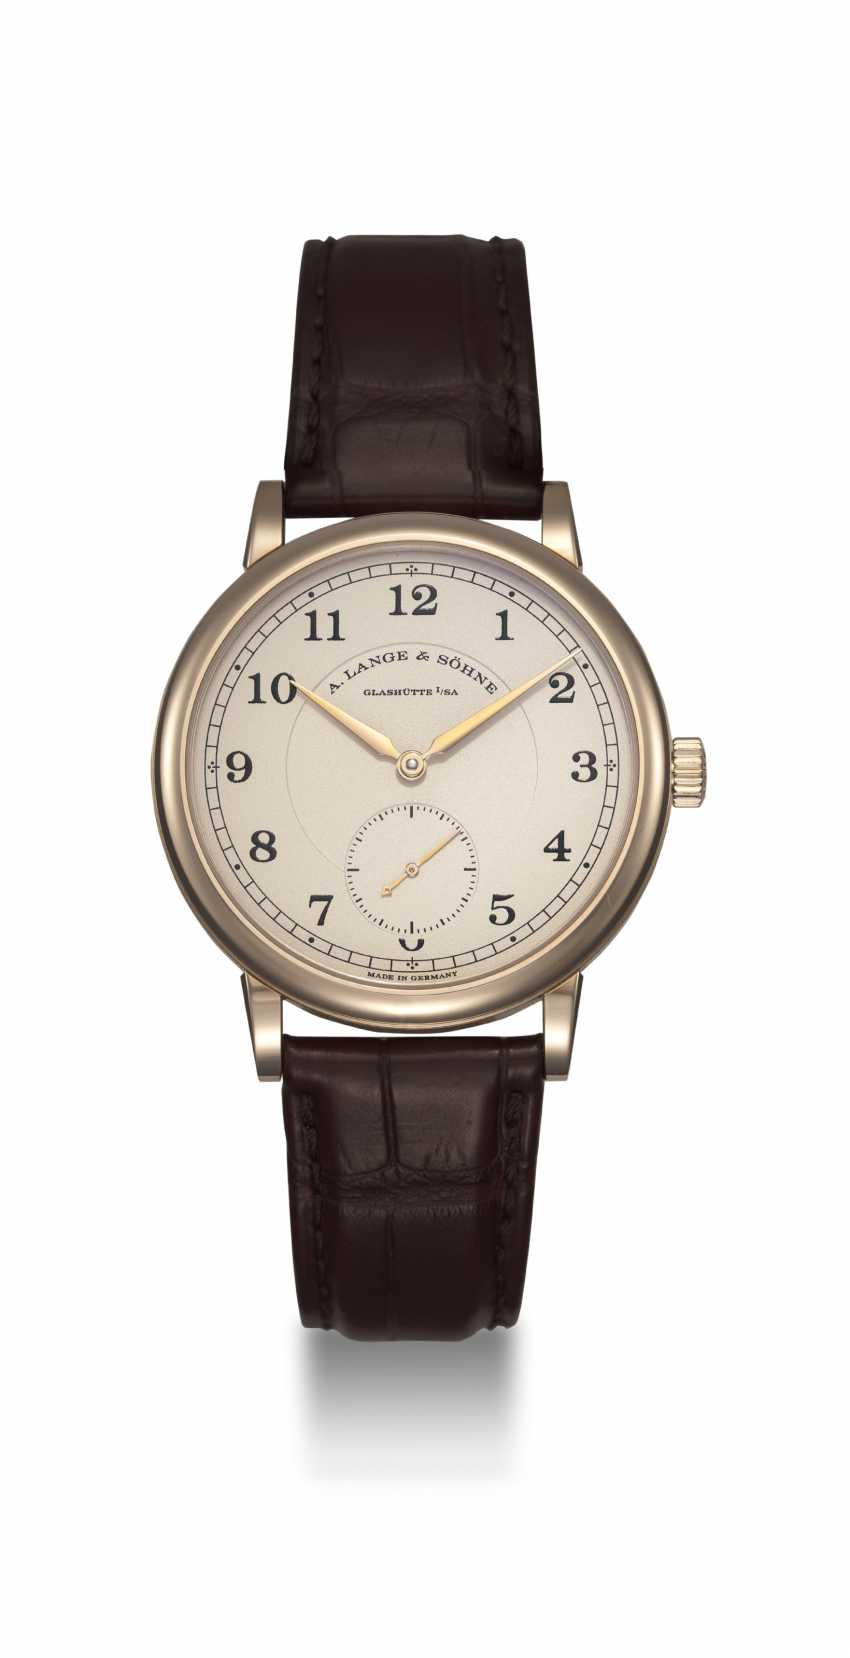 A. LANGE & SöHNE, A LIMITED EDITION HONEY GOLD 1815 ANNIVERSARY F.A. LANGE, 11/200 - photo 3